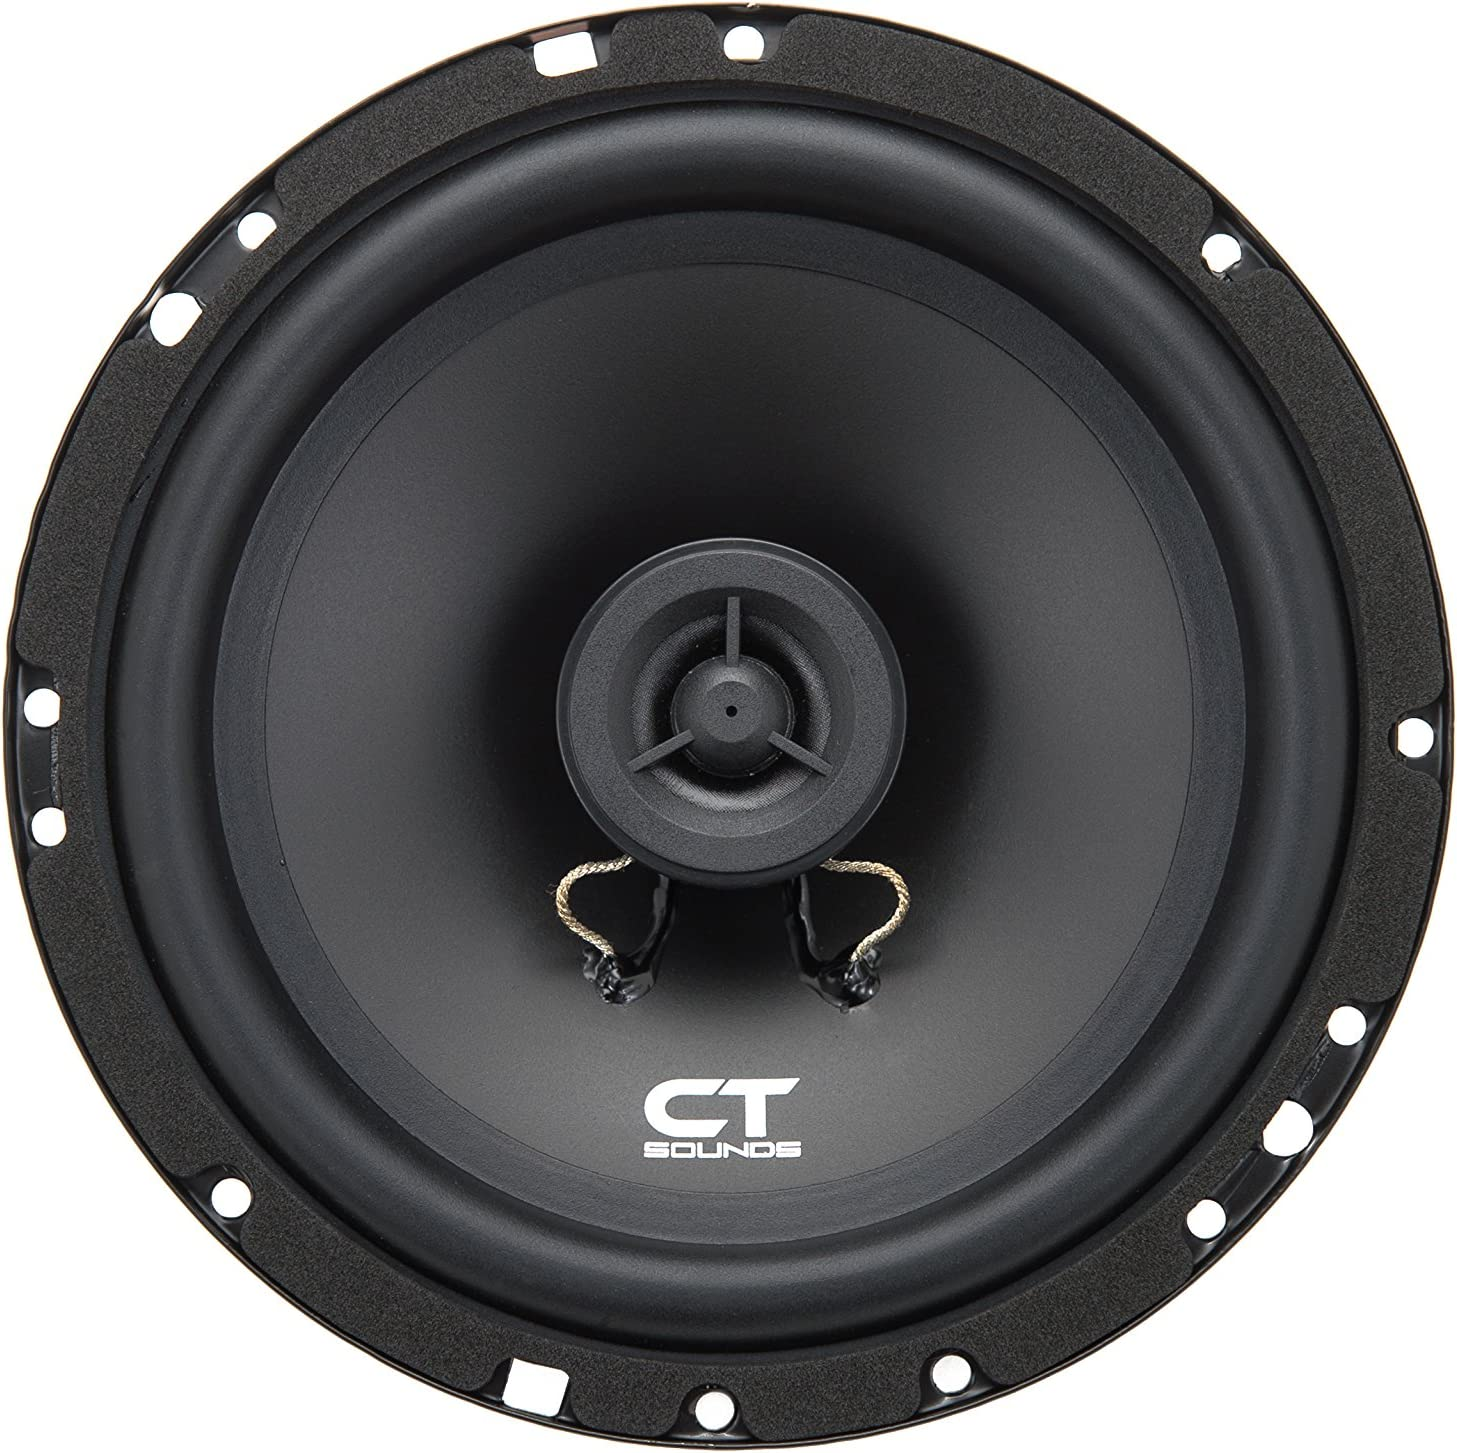 "CT Sounds 6.5 Inch Coaxial Car Speakers, 2 Way Full Range, 30W (RMS) | 60W Max Power Per Speaker, 0.8""/21mm Voice Coil, Silk Dome, Easy Mounting, 4 Ohm Impedance"